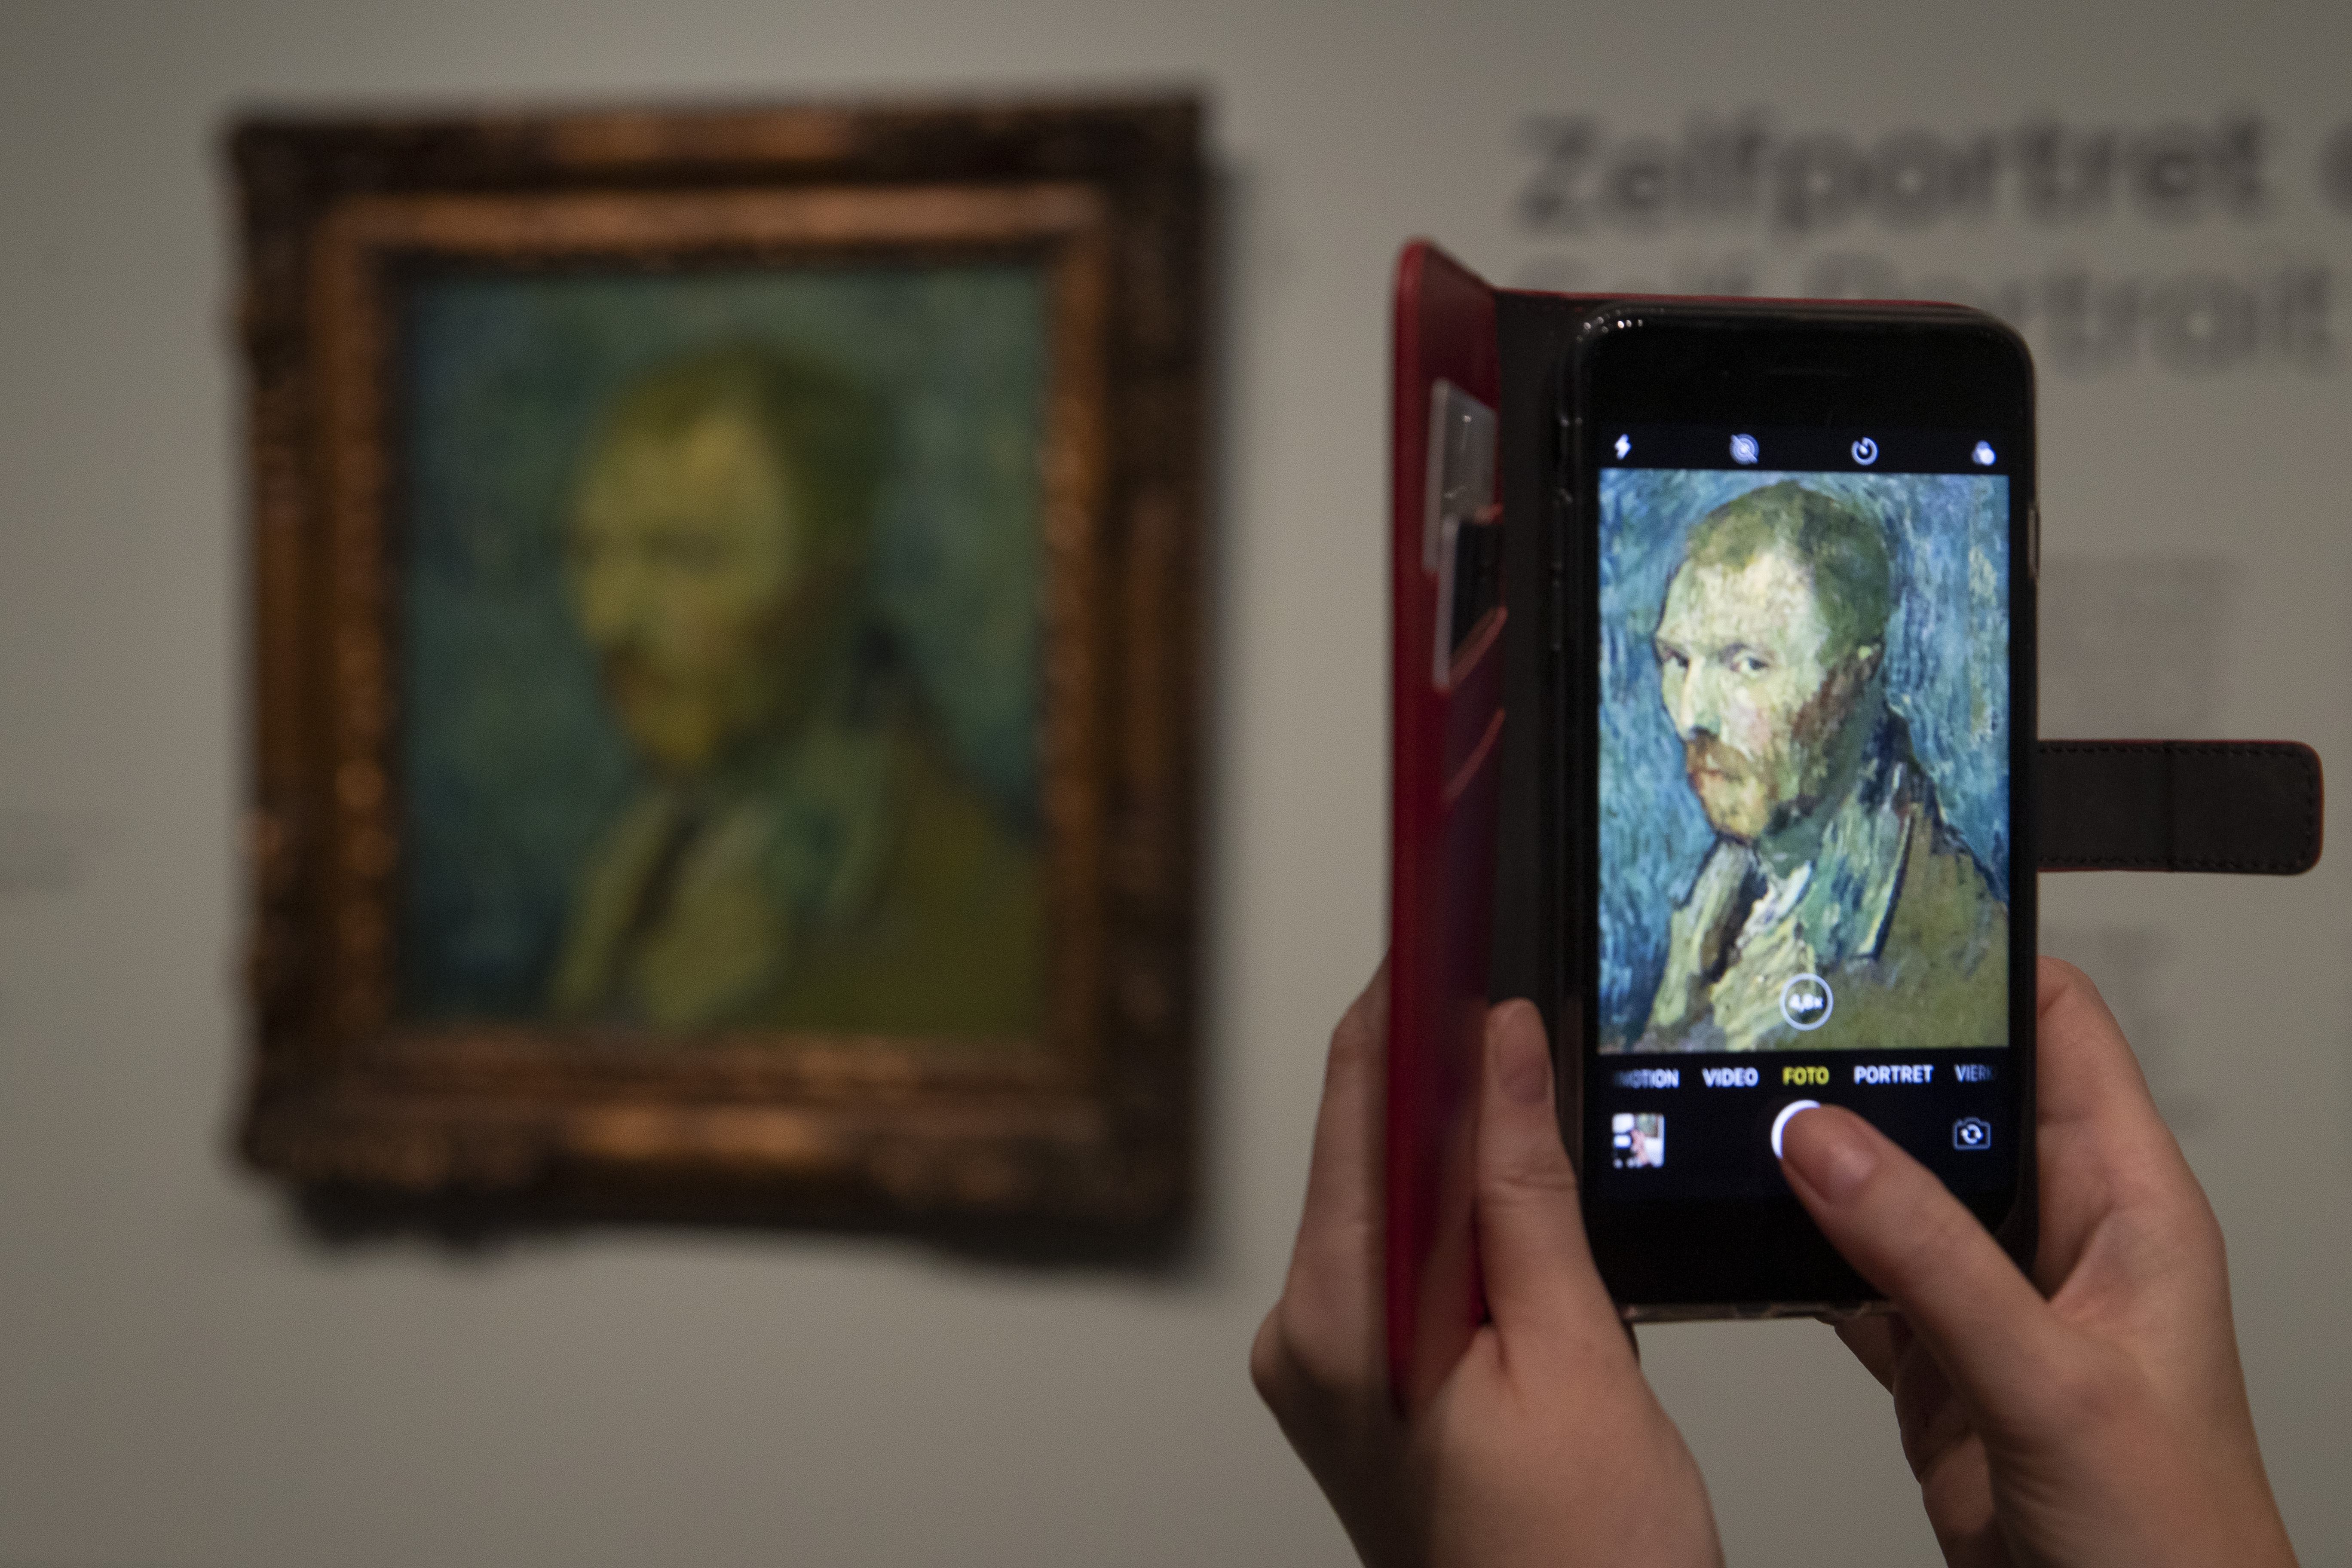 A journalist takes a picture of the previously contested painting by Dutch master Vincent van Gogh, a 1889 self-portrait, during a press conference in Amsterdam, Netherlands, on Jan. 20, 2020.